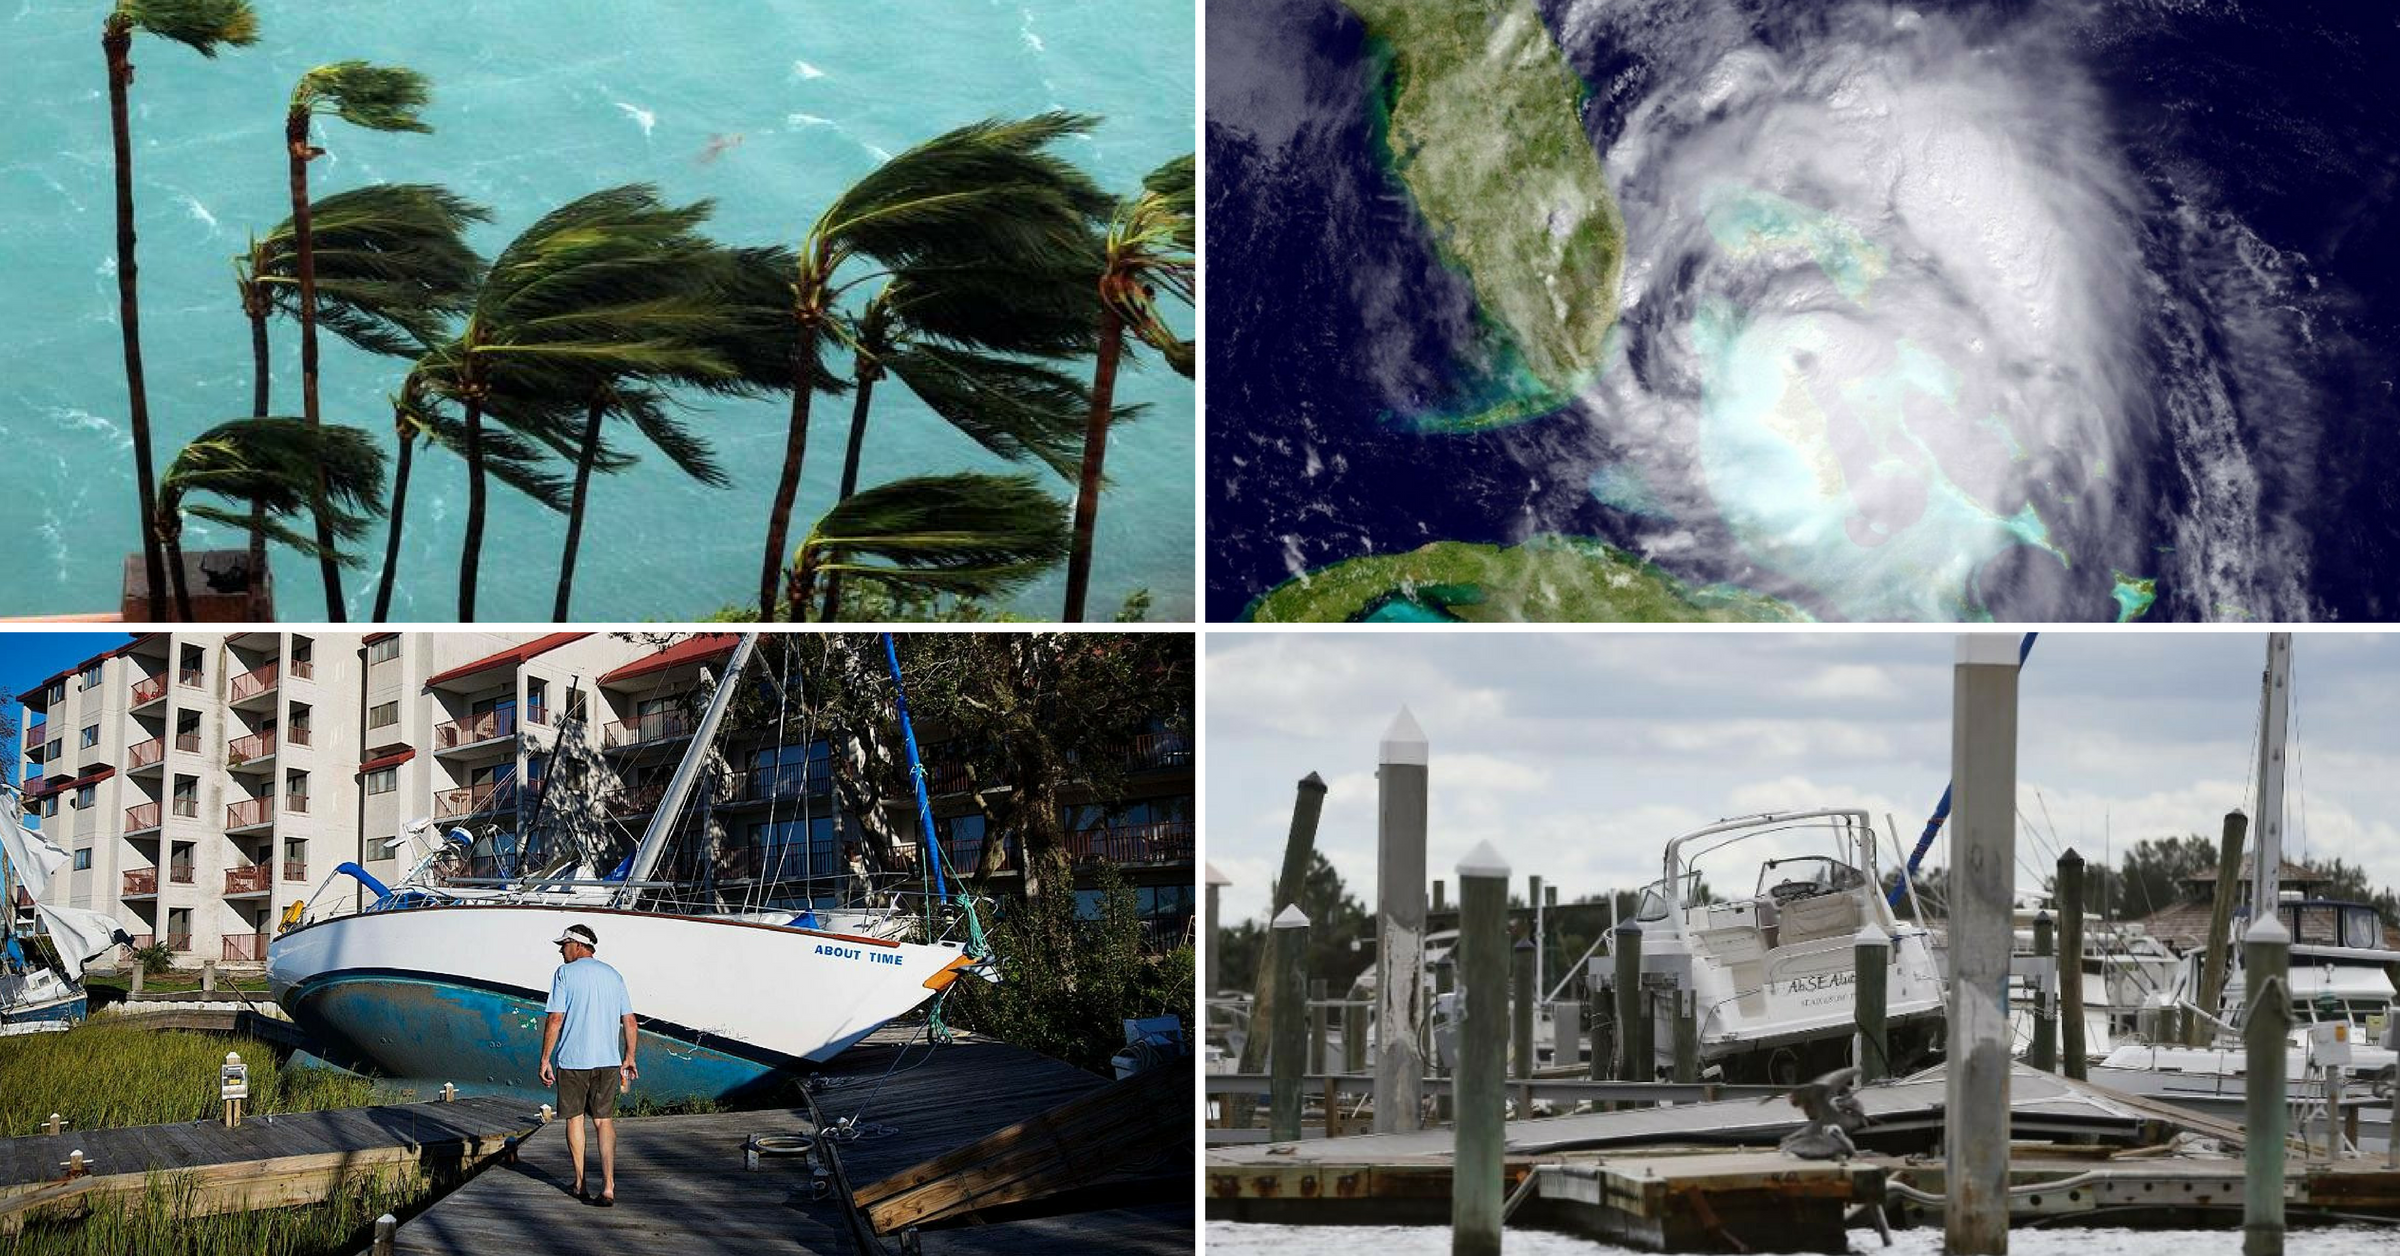 Hurricane Matthew Marina & Waterway Damage Report: